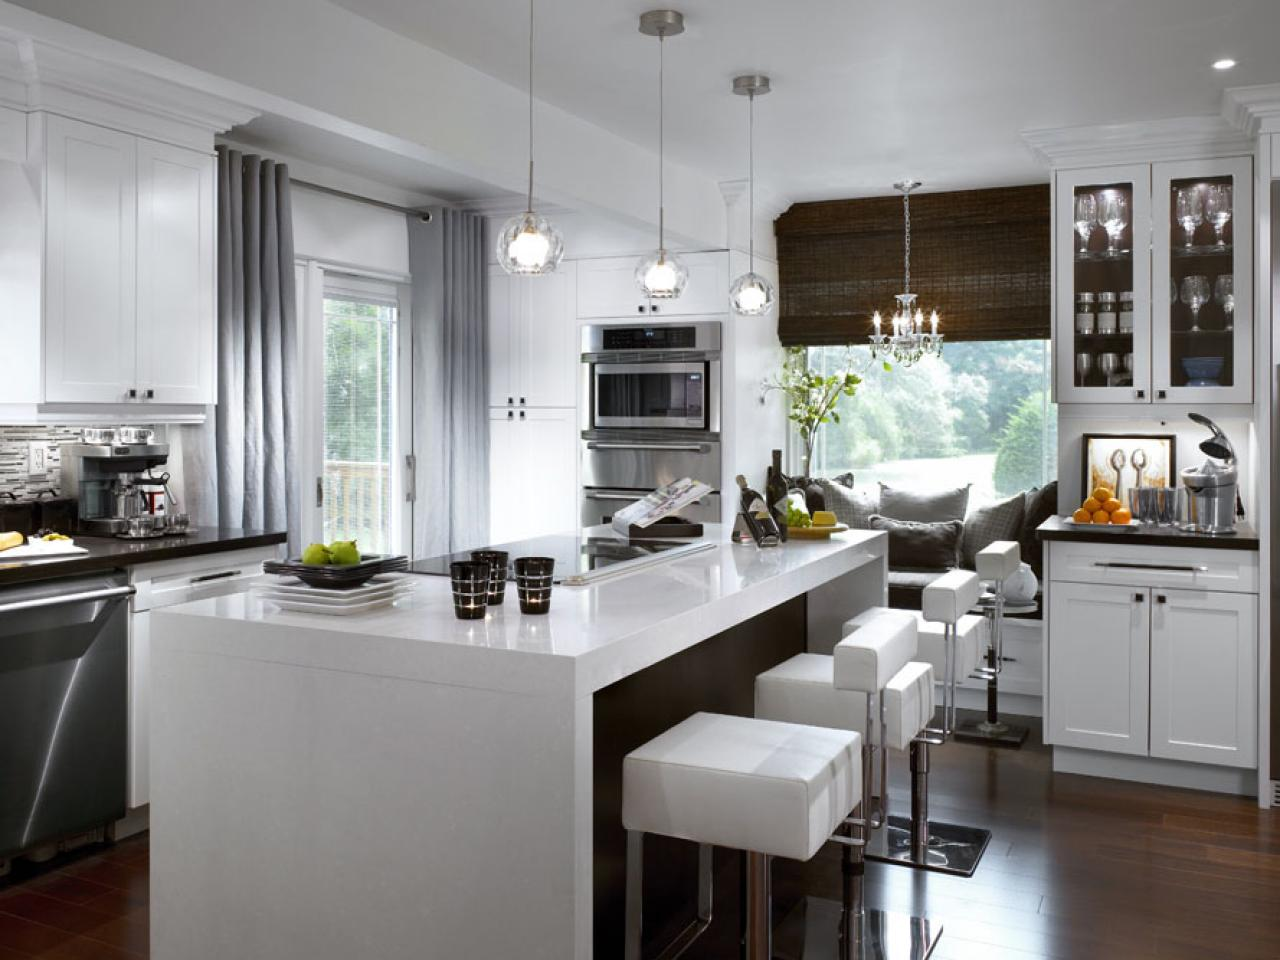 candice olson kitchens pictures photo - 7